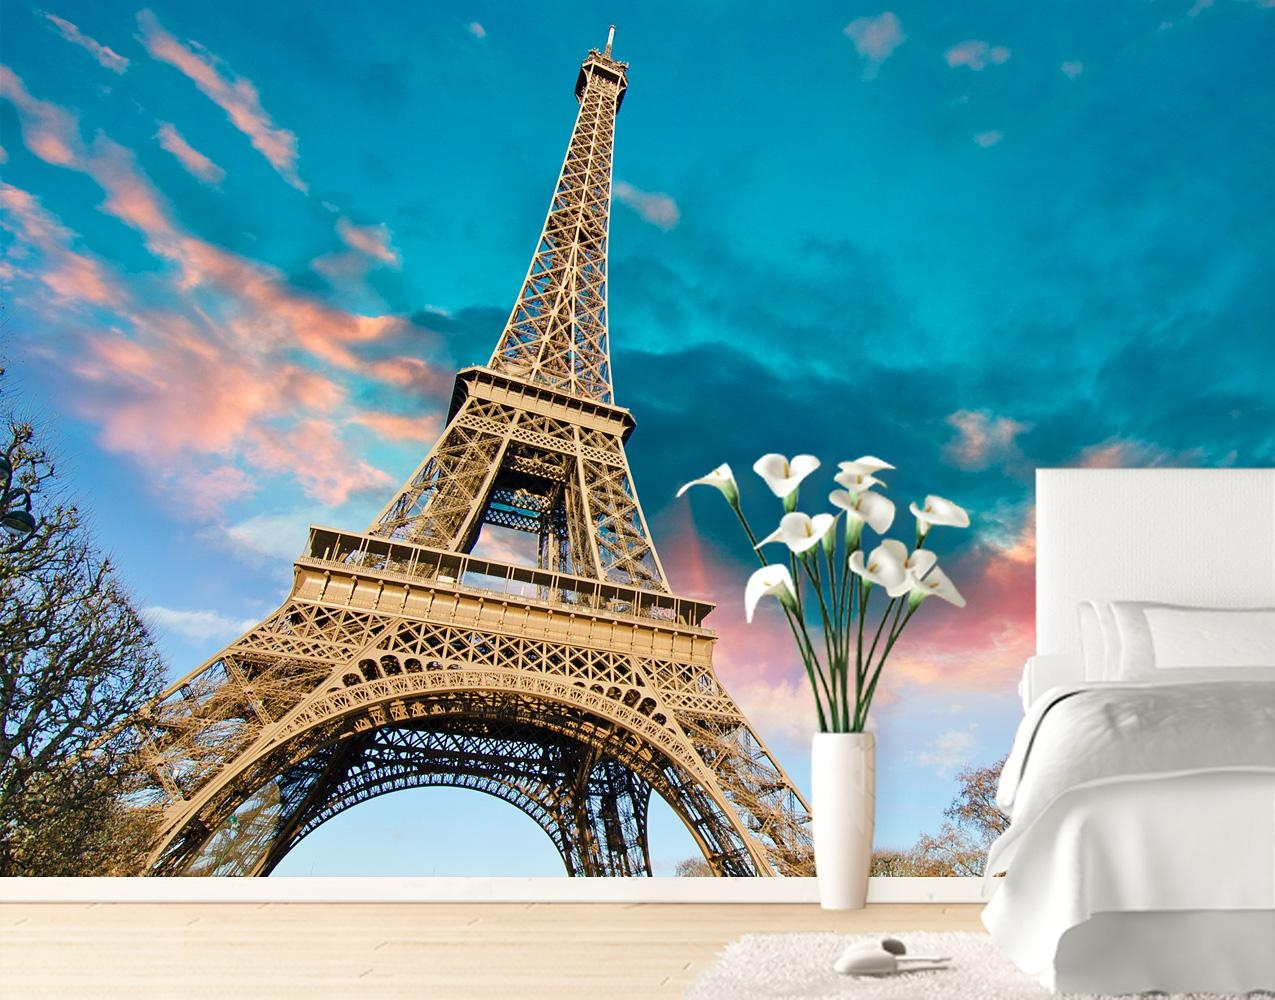 Eiffel Tower Wall Mural – Your Decal Shop | Nz Designer Wall Art In Eiffel Tower Wall Art (Image 7 of 20)